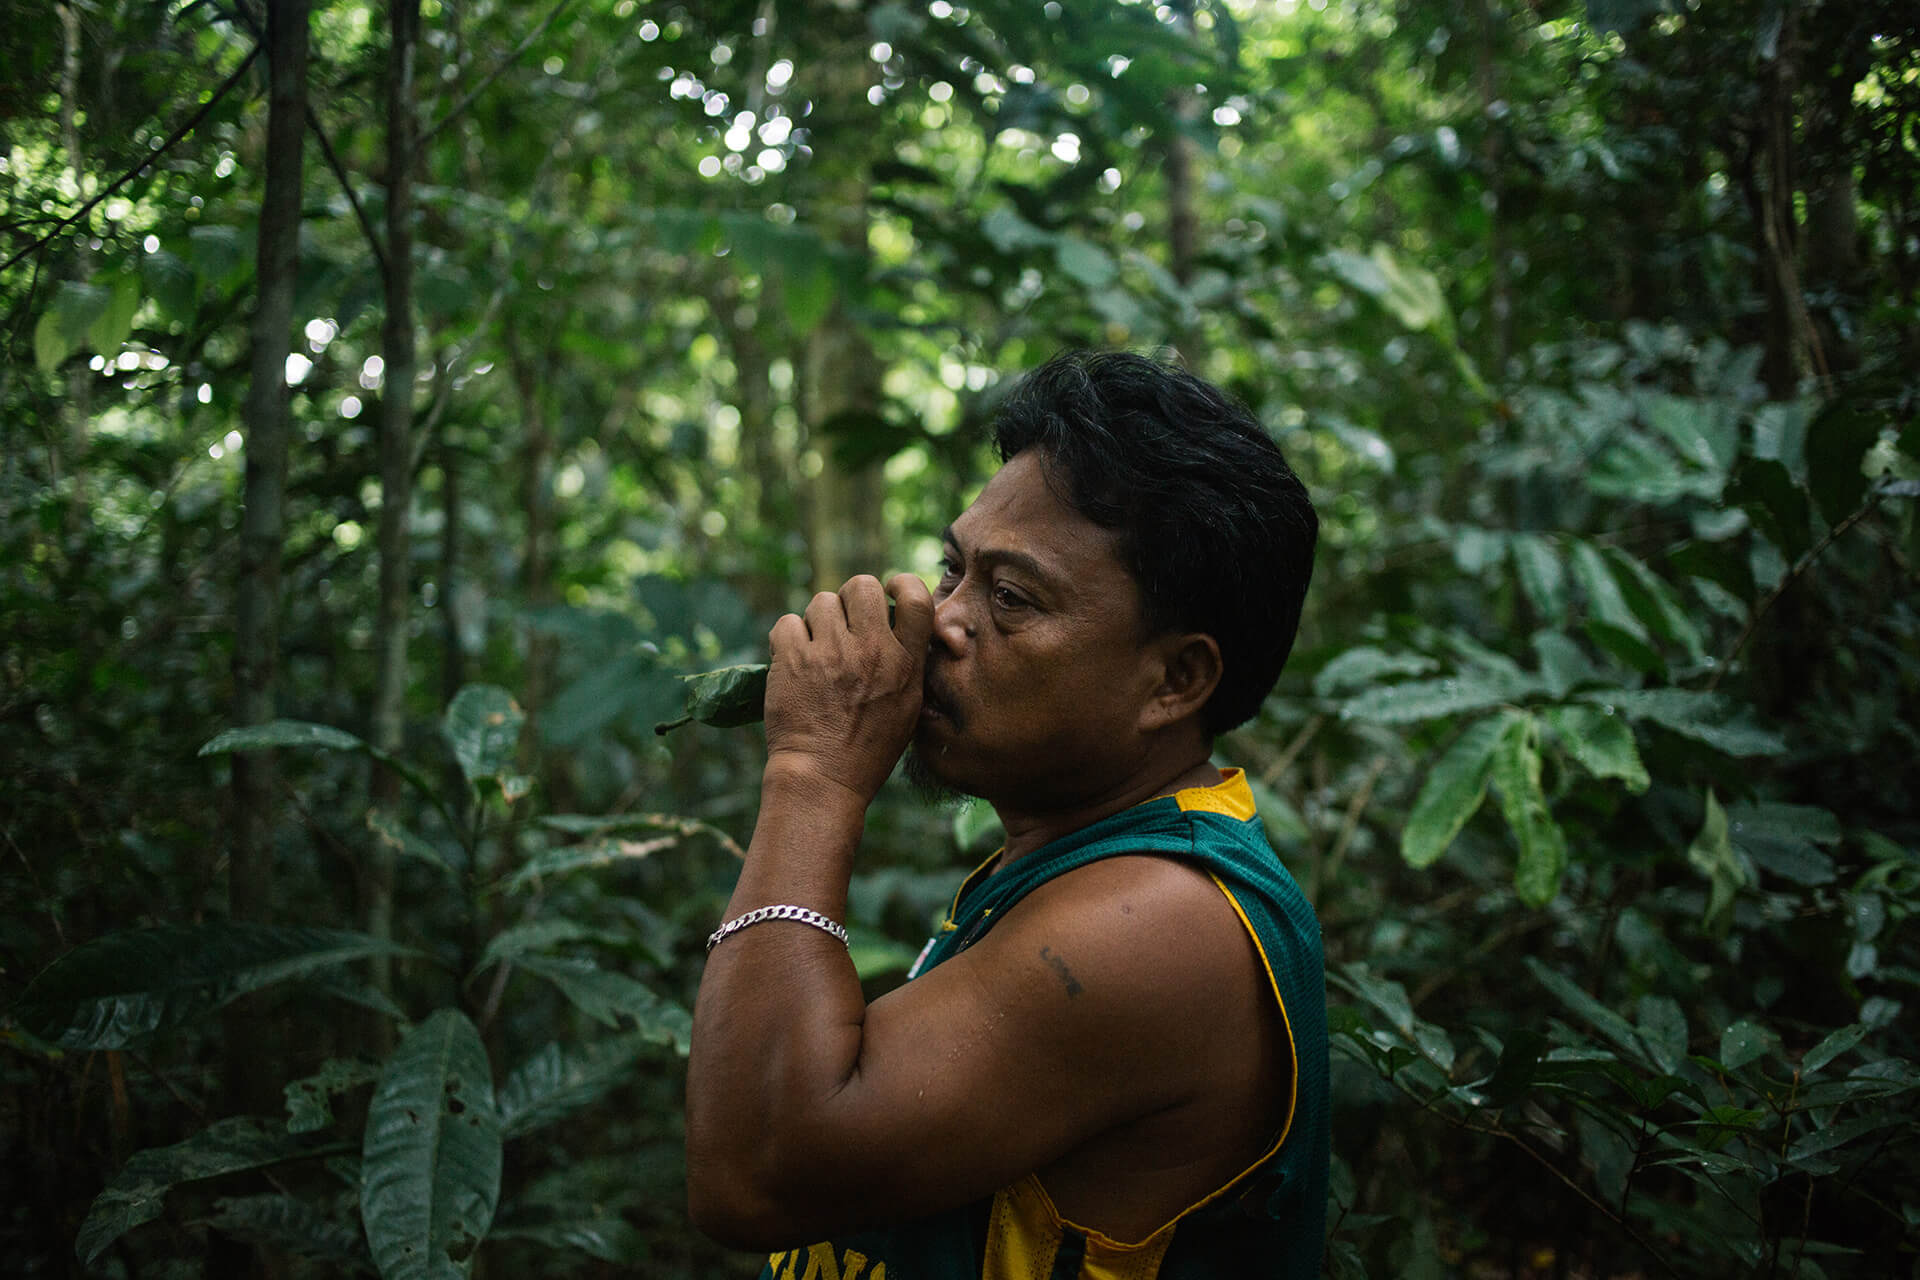 Noel Torremocha uses tastes and smells to identify and categorize medicinal plants.